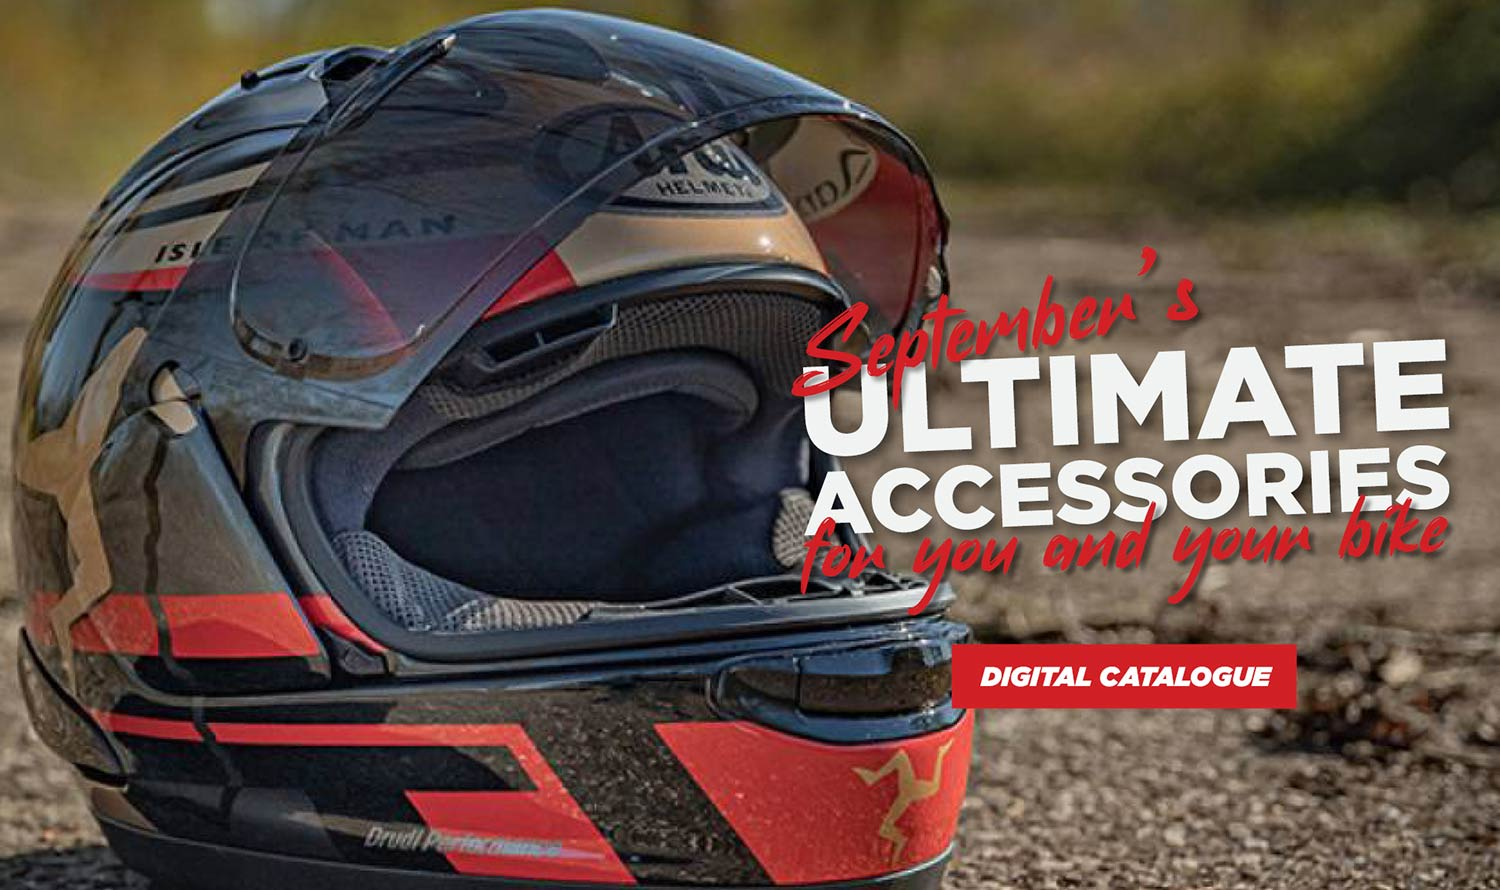 UltimateMotorbikes-AccessoriesOffer-HPB-07-09-20-MJ